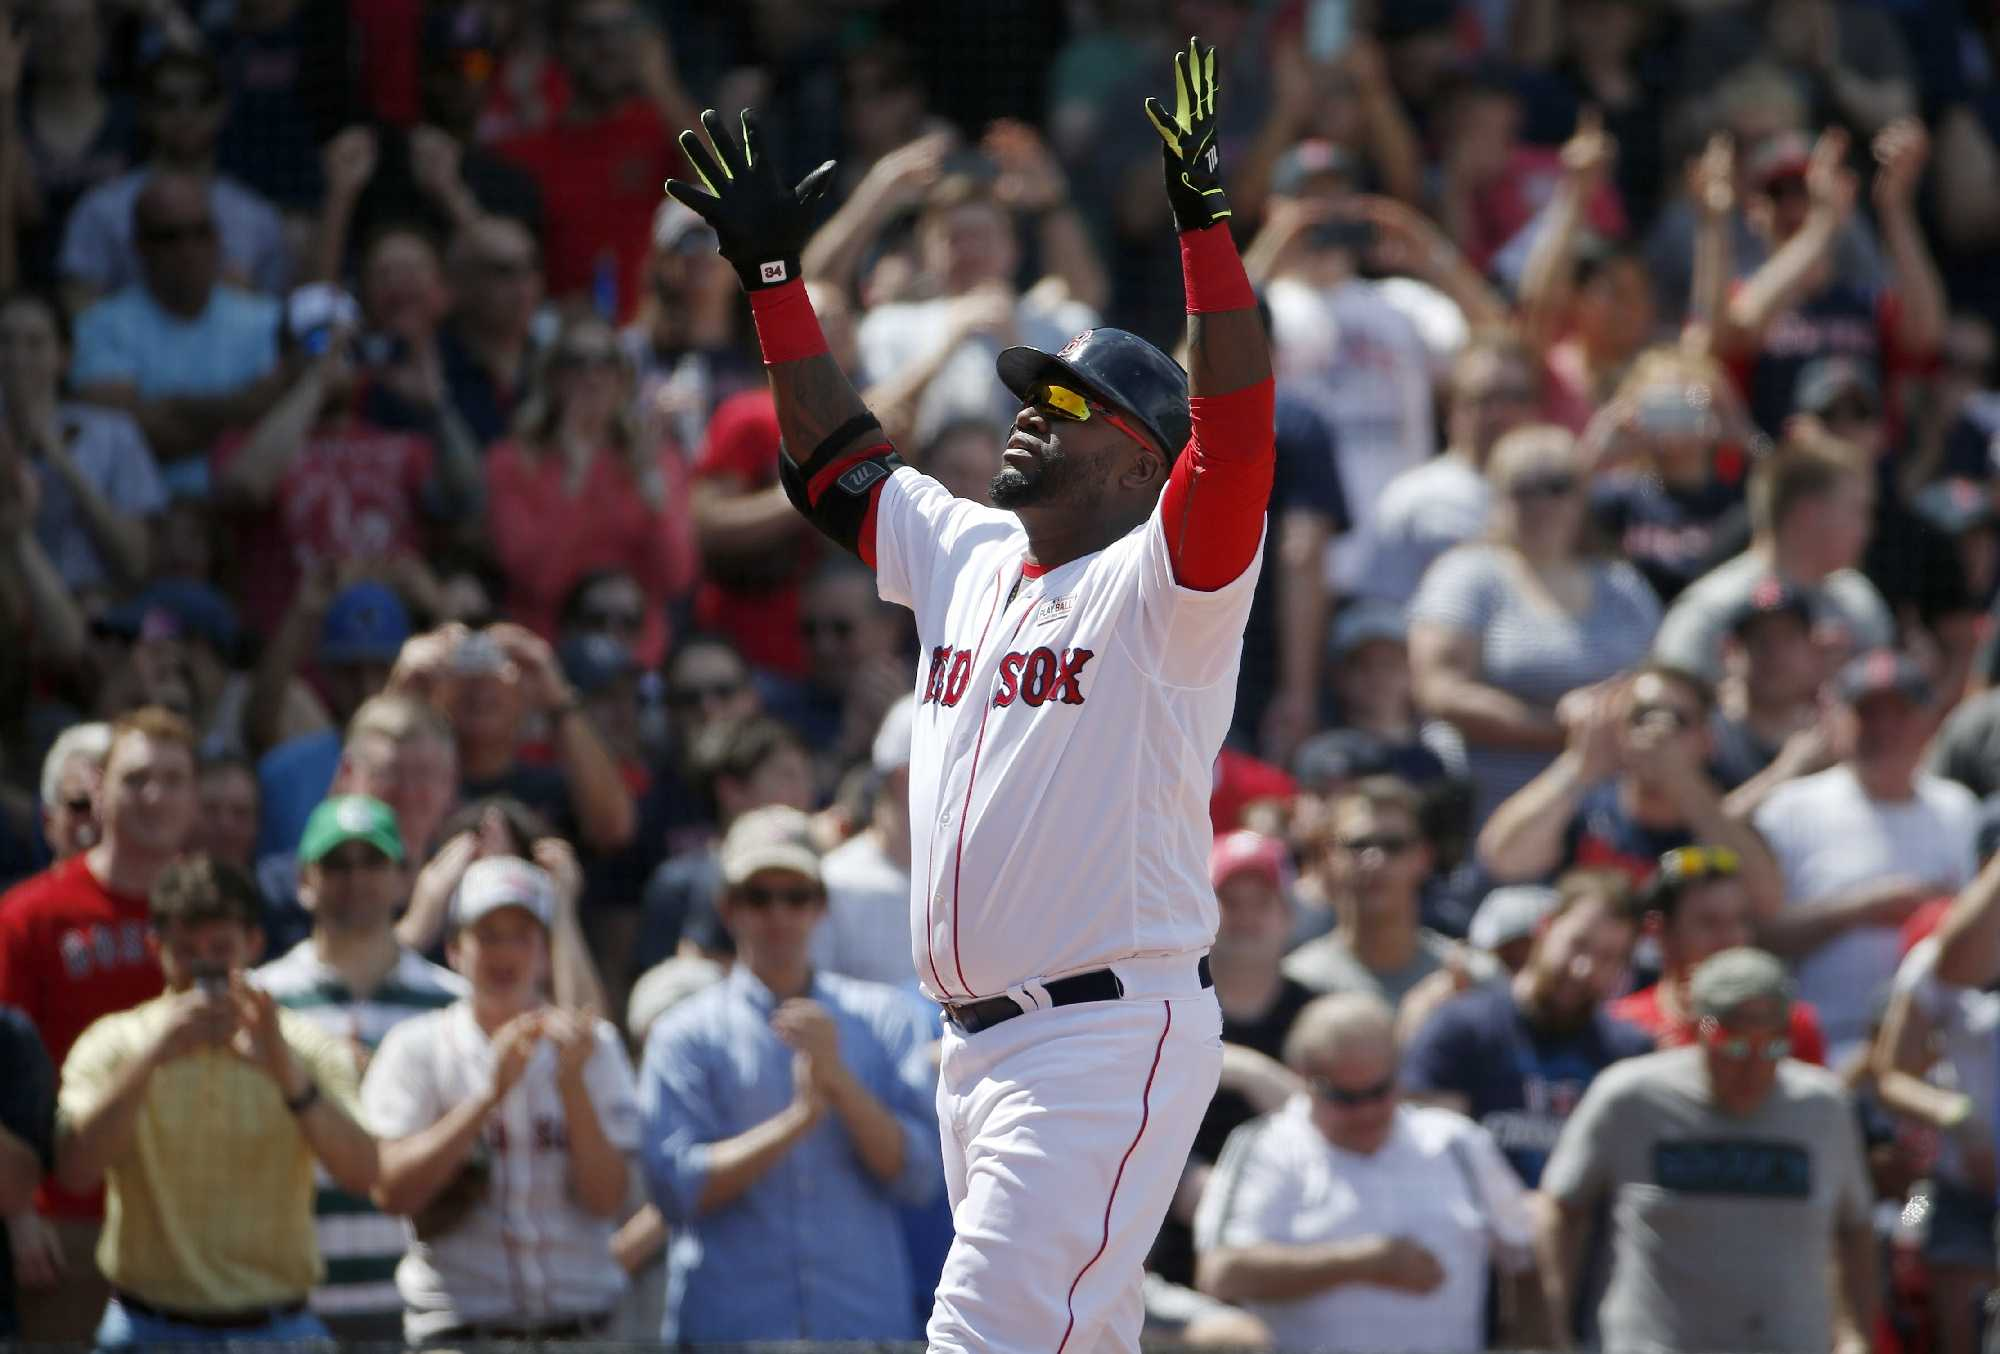 Boston renaming street after retired Red Sox player Ortiz